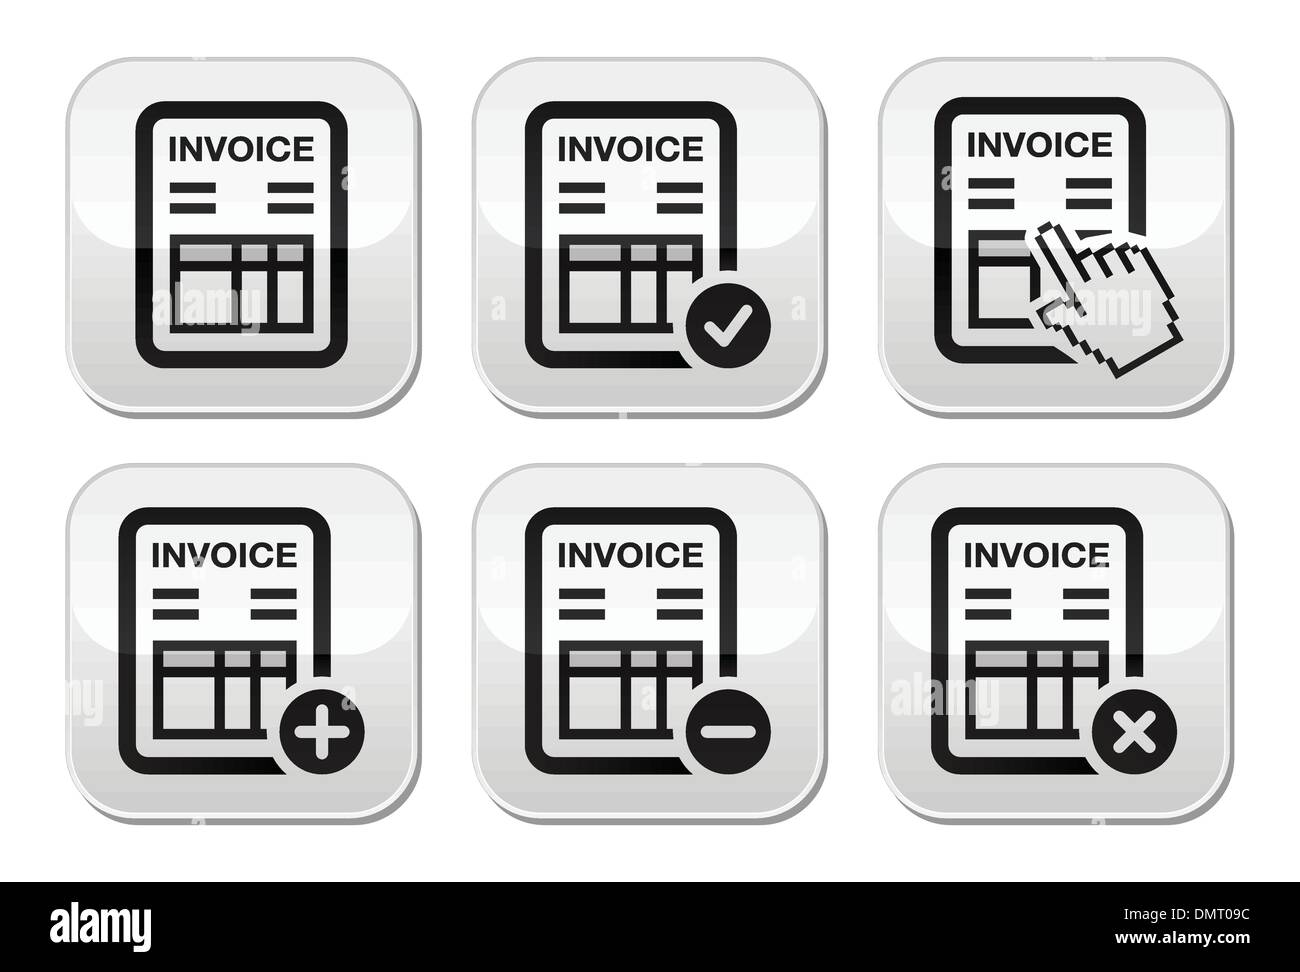 Invoice, finance vector buttons set - Stock Vector